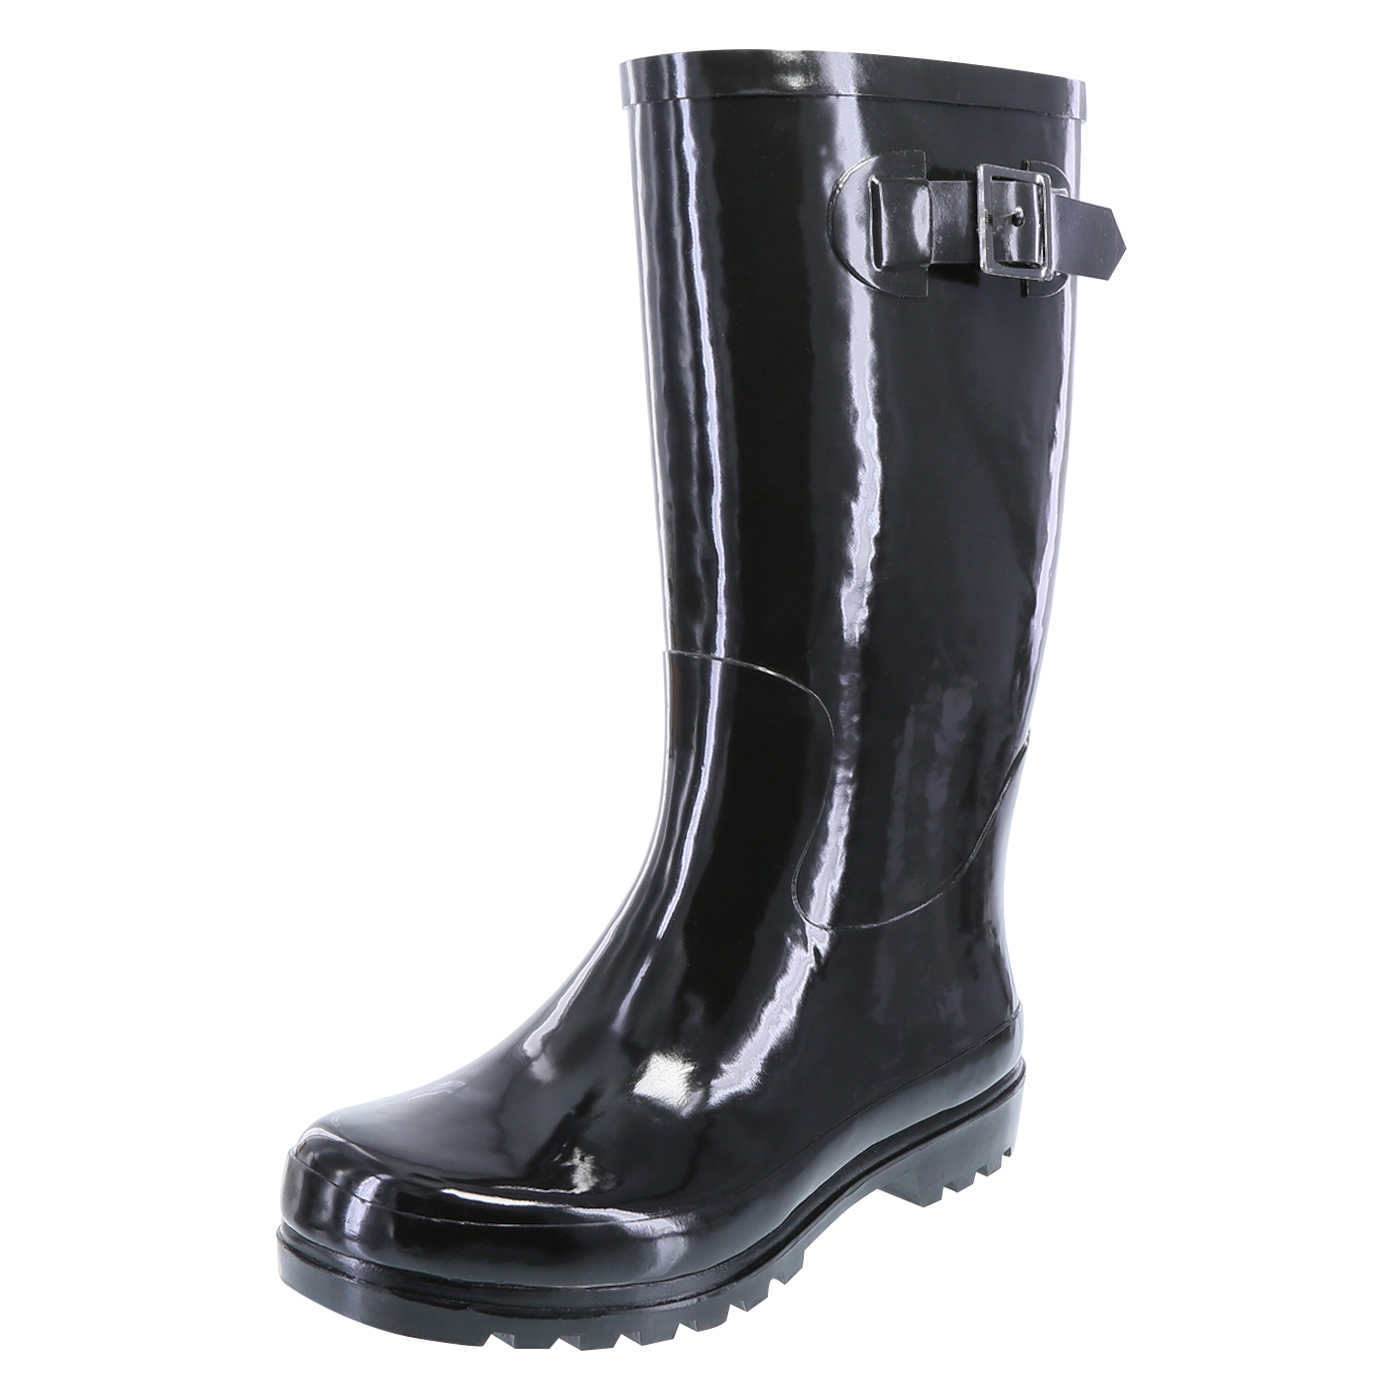 Black Rain Boots For Women cYWDiWH0